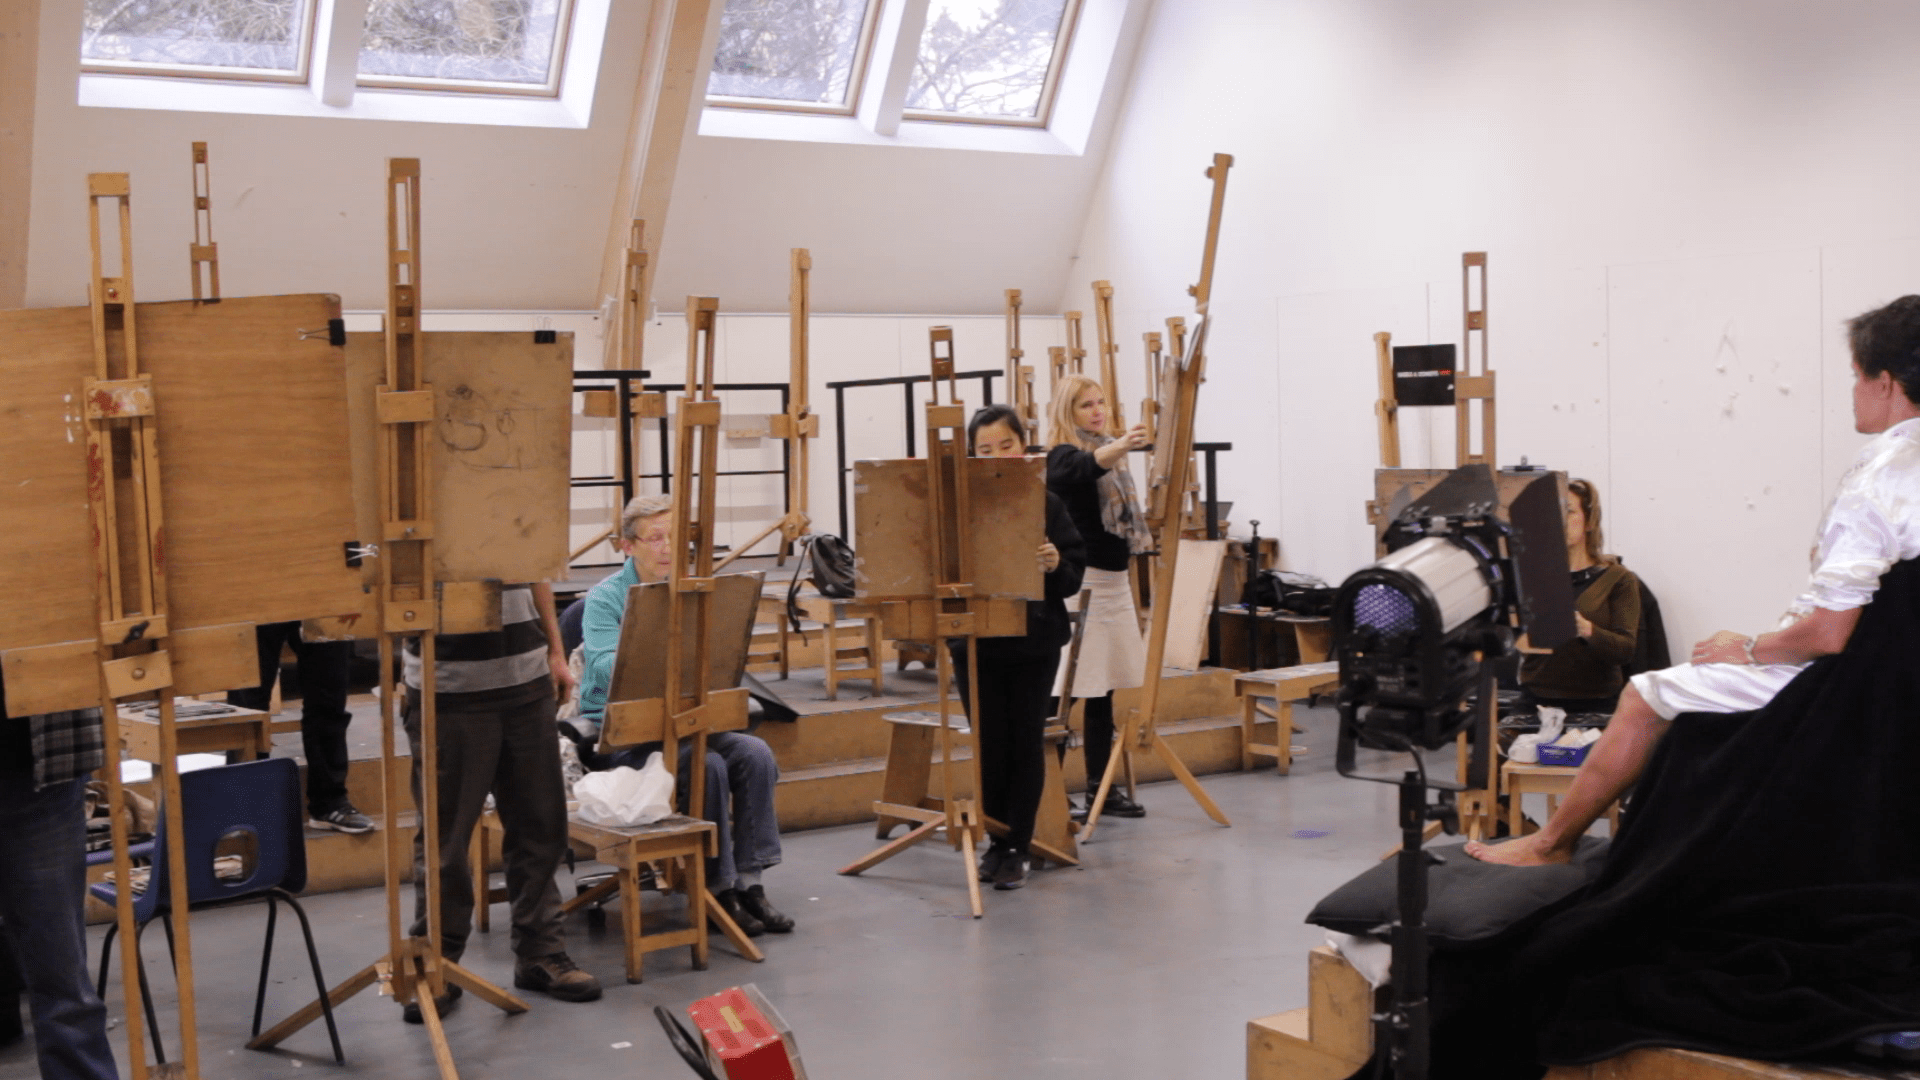 The Arts Bournemouth a Documentary style promotional video